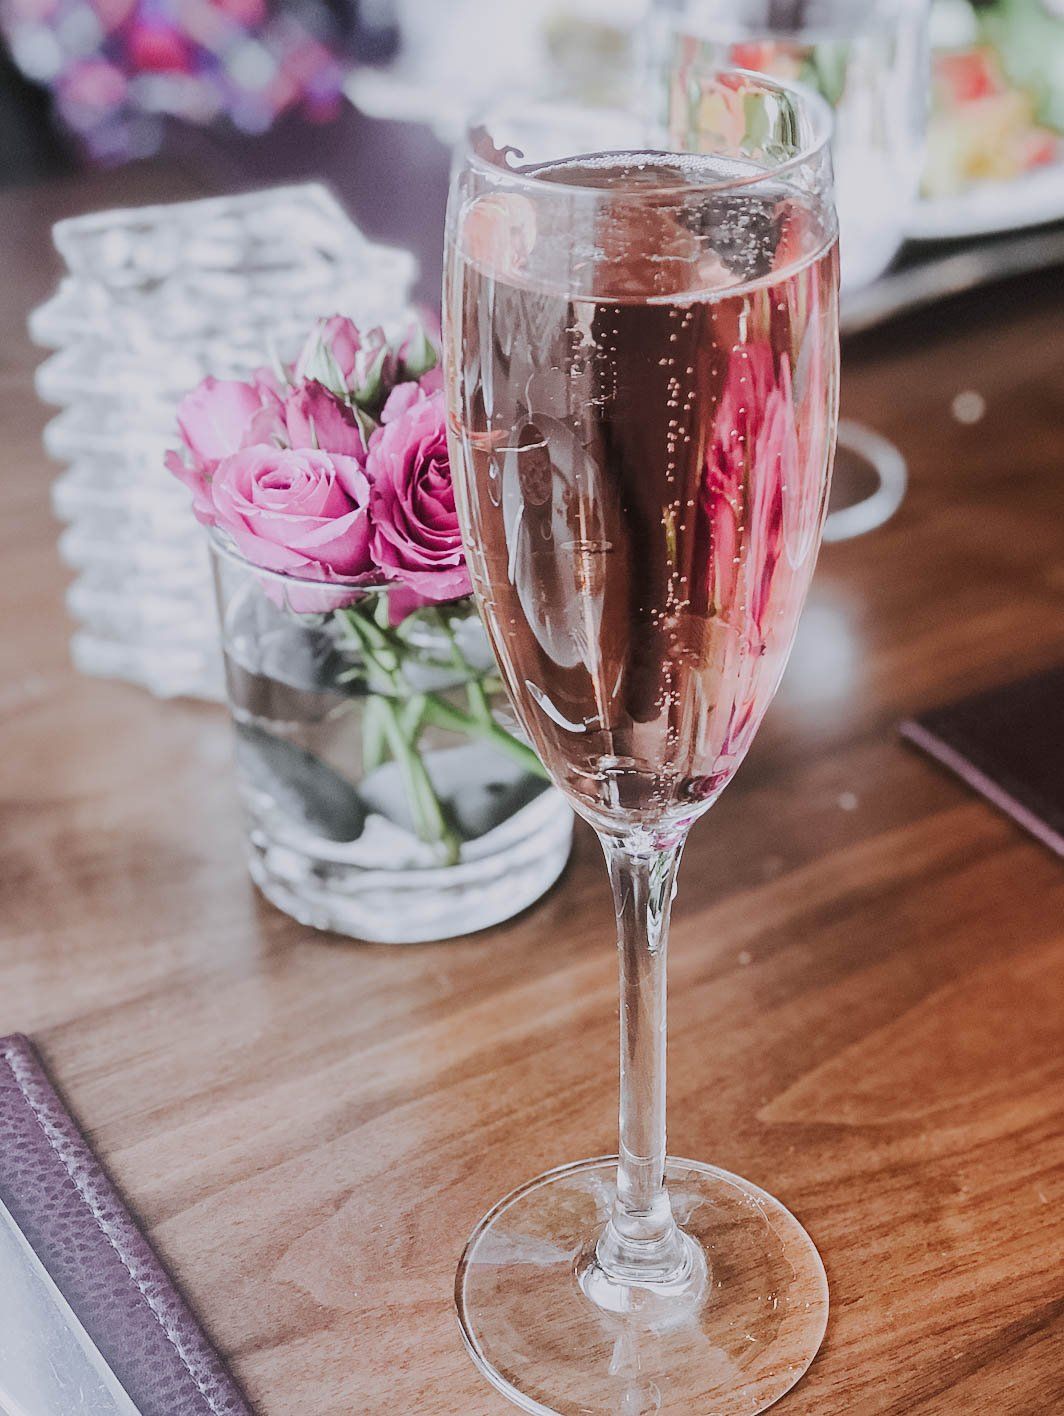 Vast On Twitter Did You Know That On This Day In 1693 Champagne Was Invented By Dom Perignon Let S Toast To A Glass Of Bubbly